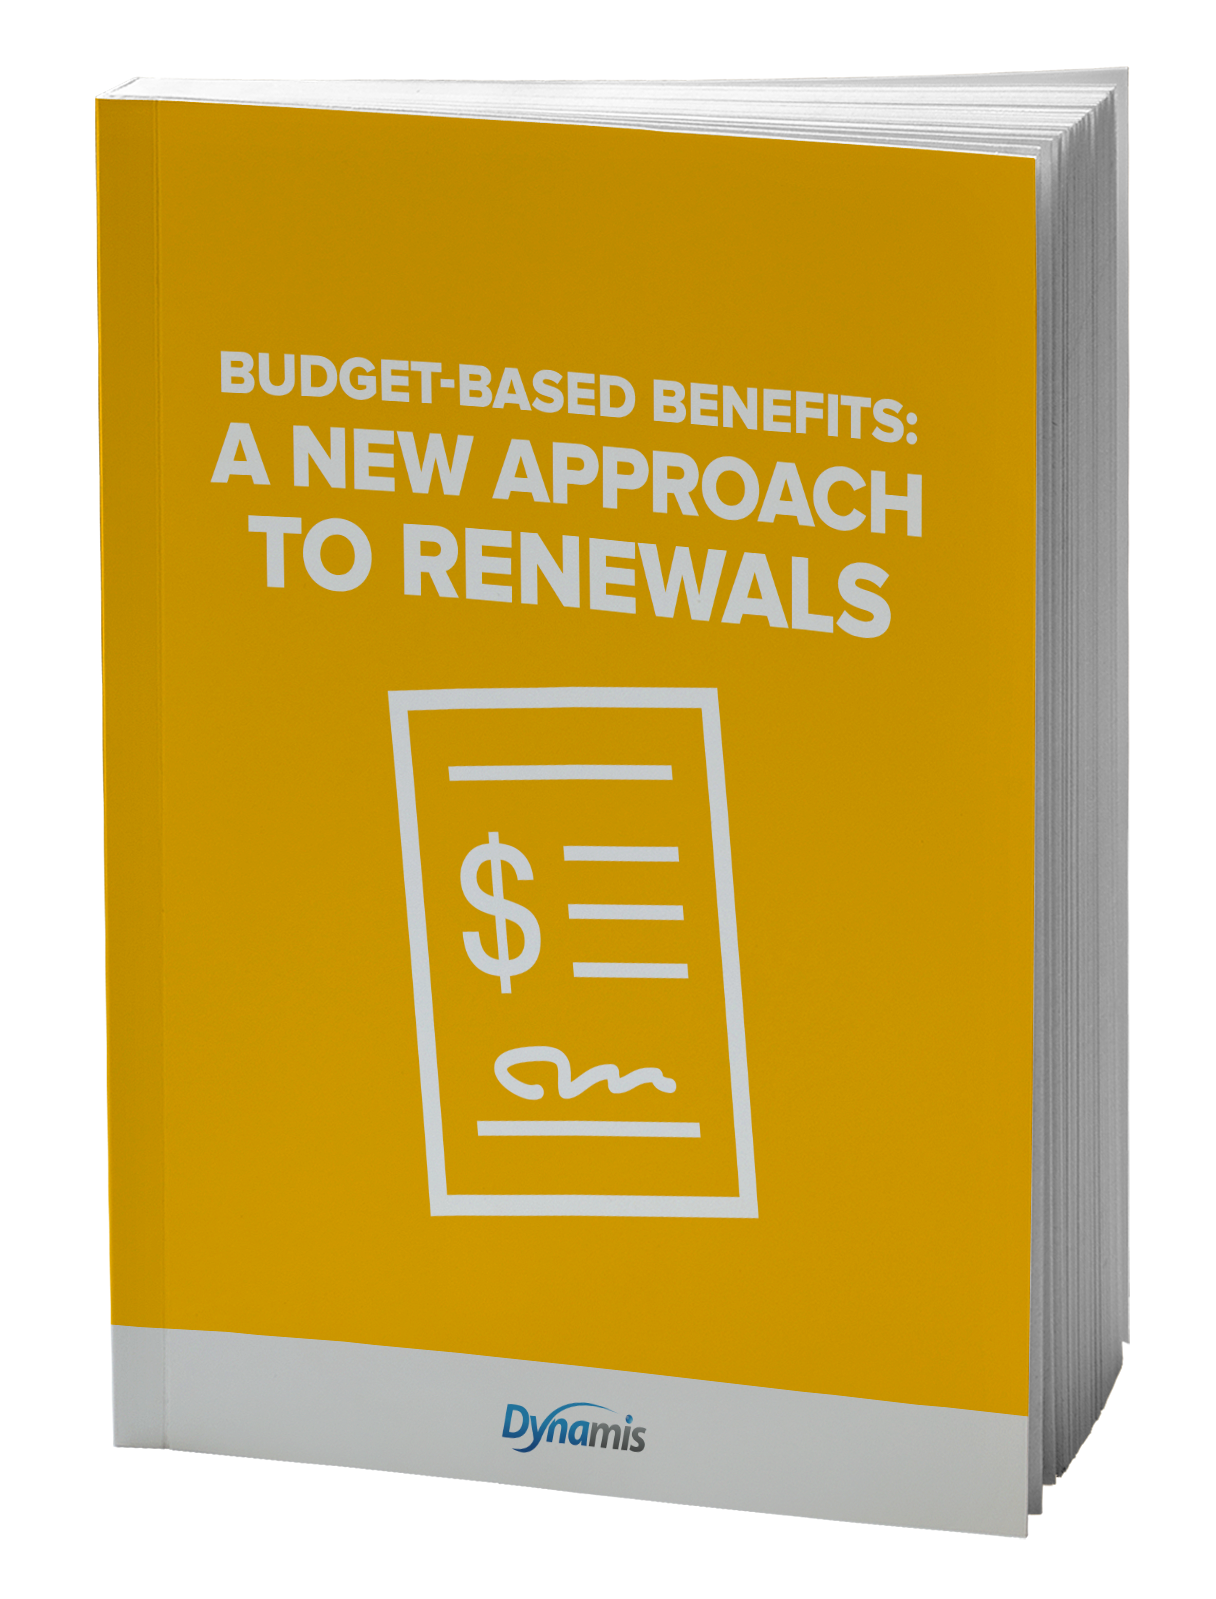 Budget-based benefits: A New Approach to Renewals